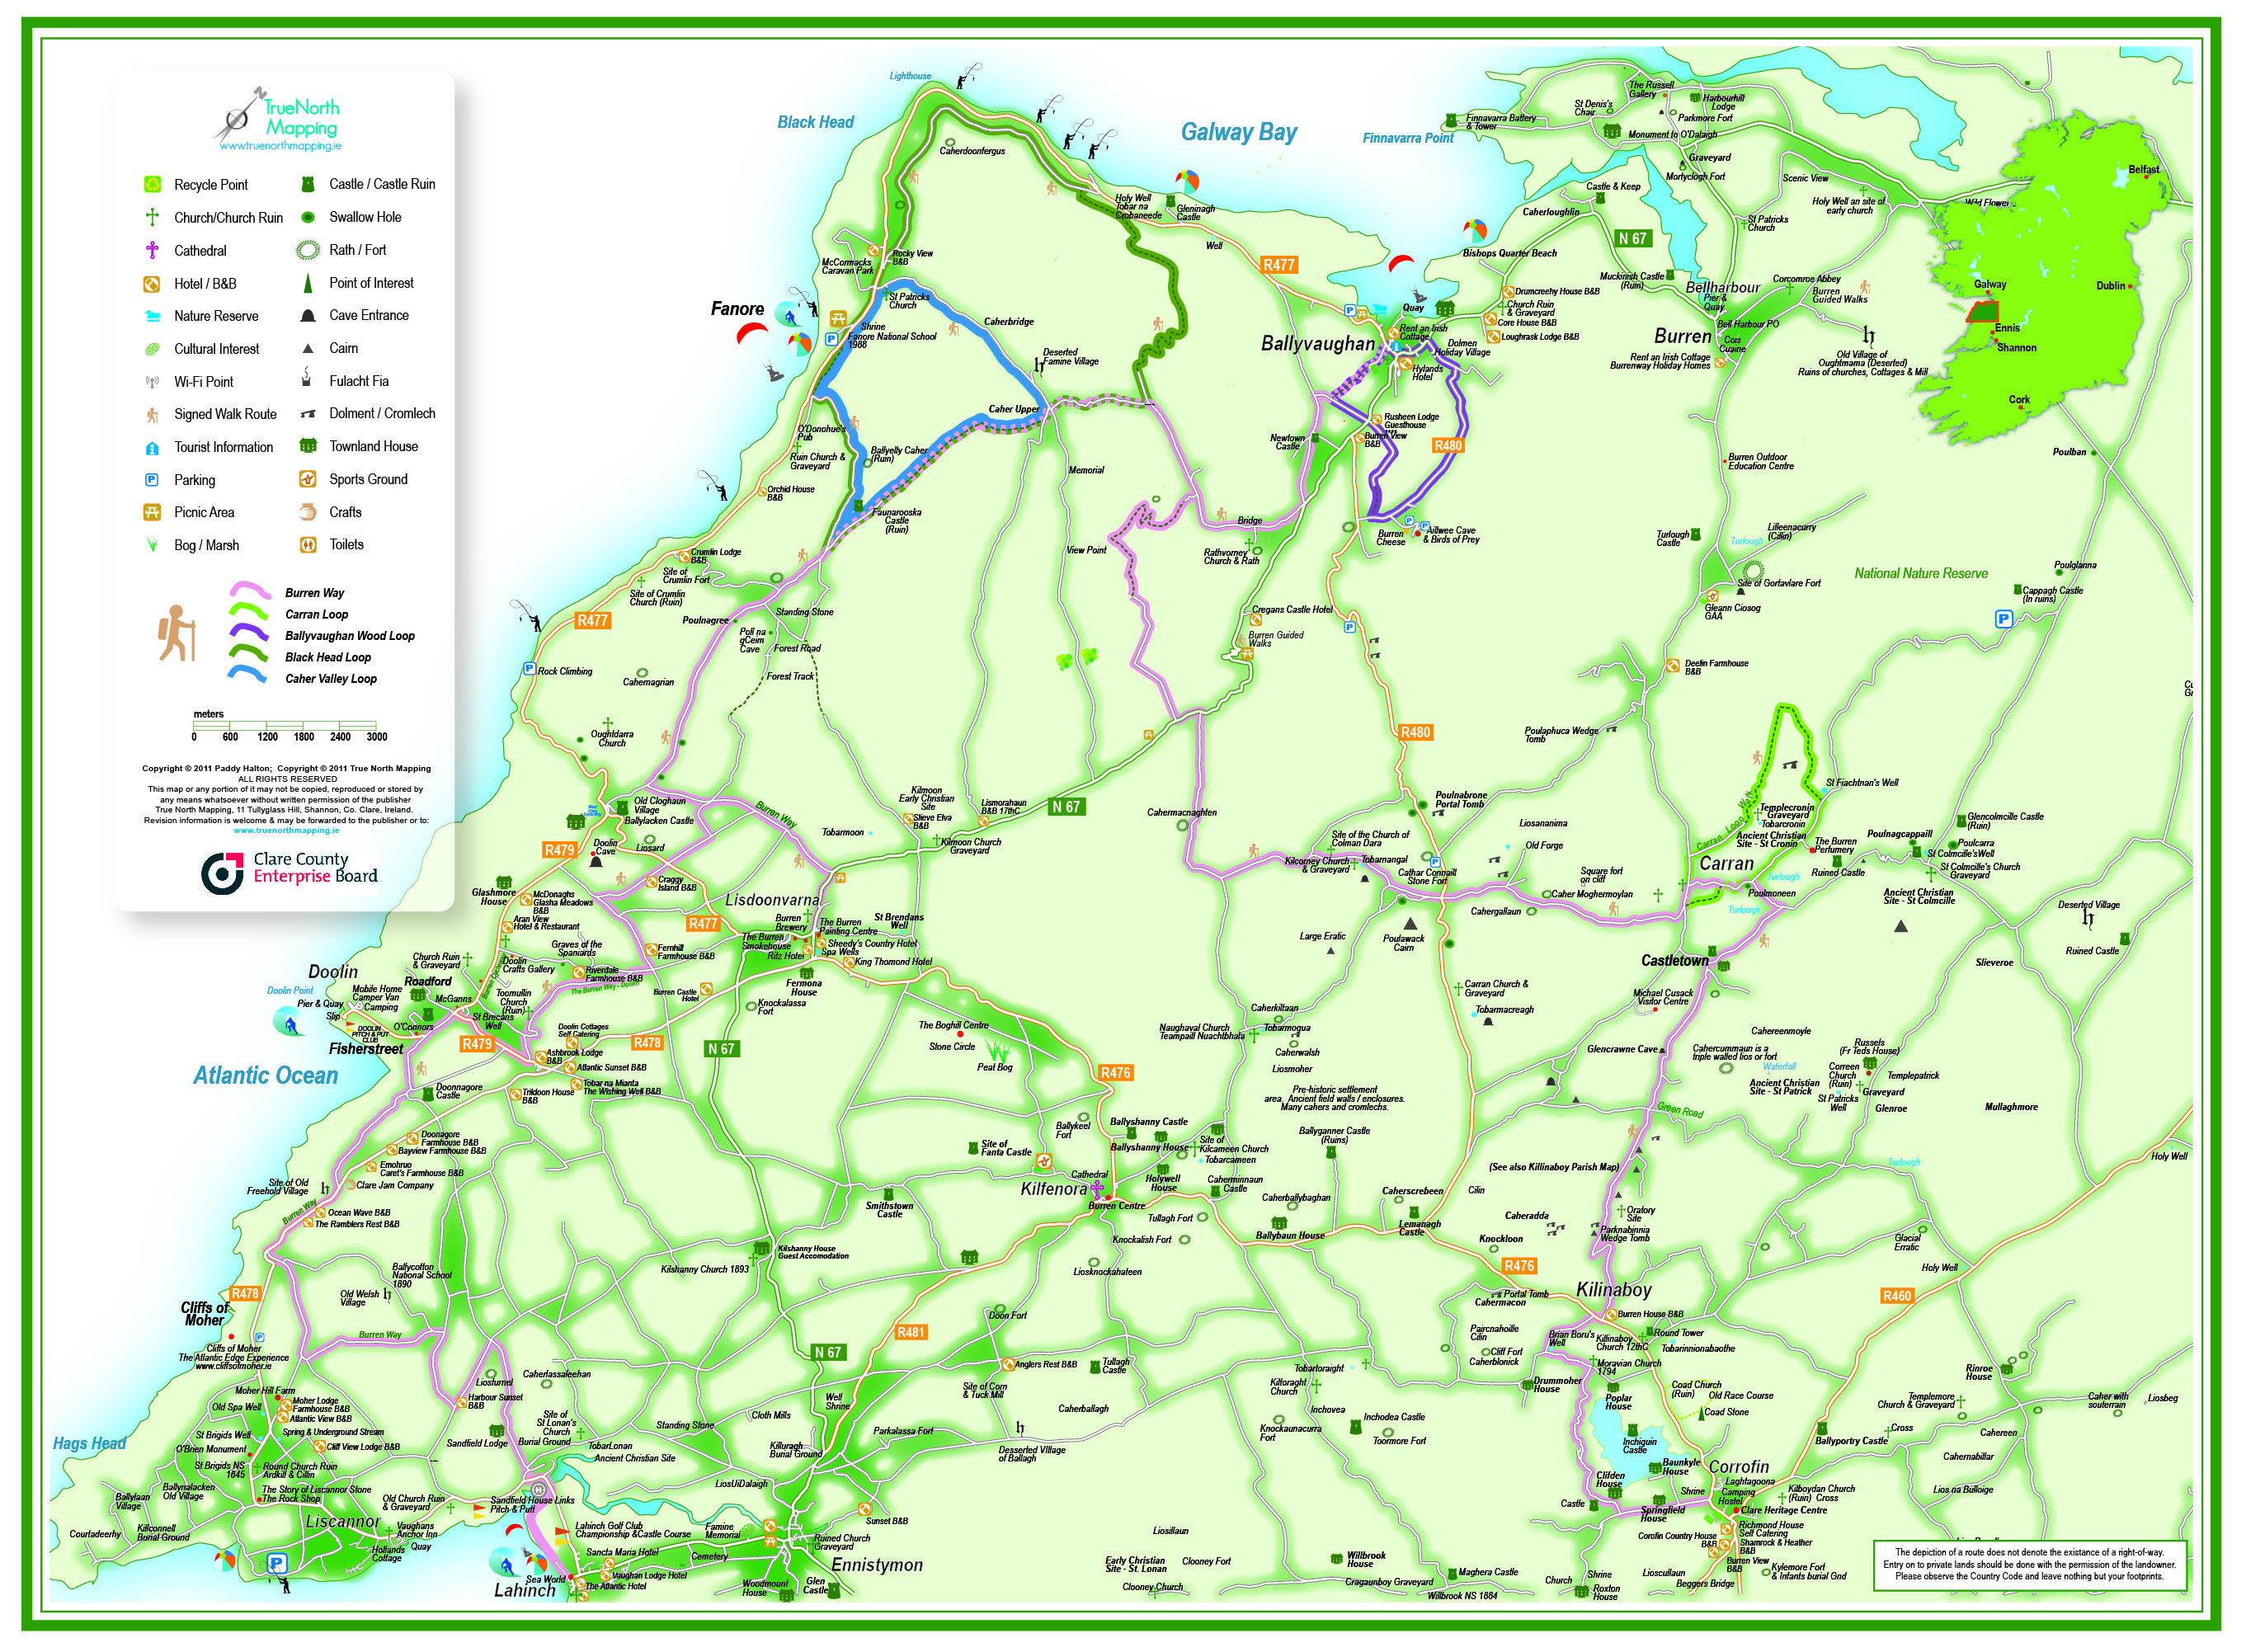 County Clare Map of Ireland- in and around Doolin, Cliffs of Moher on